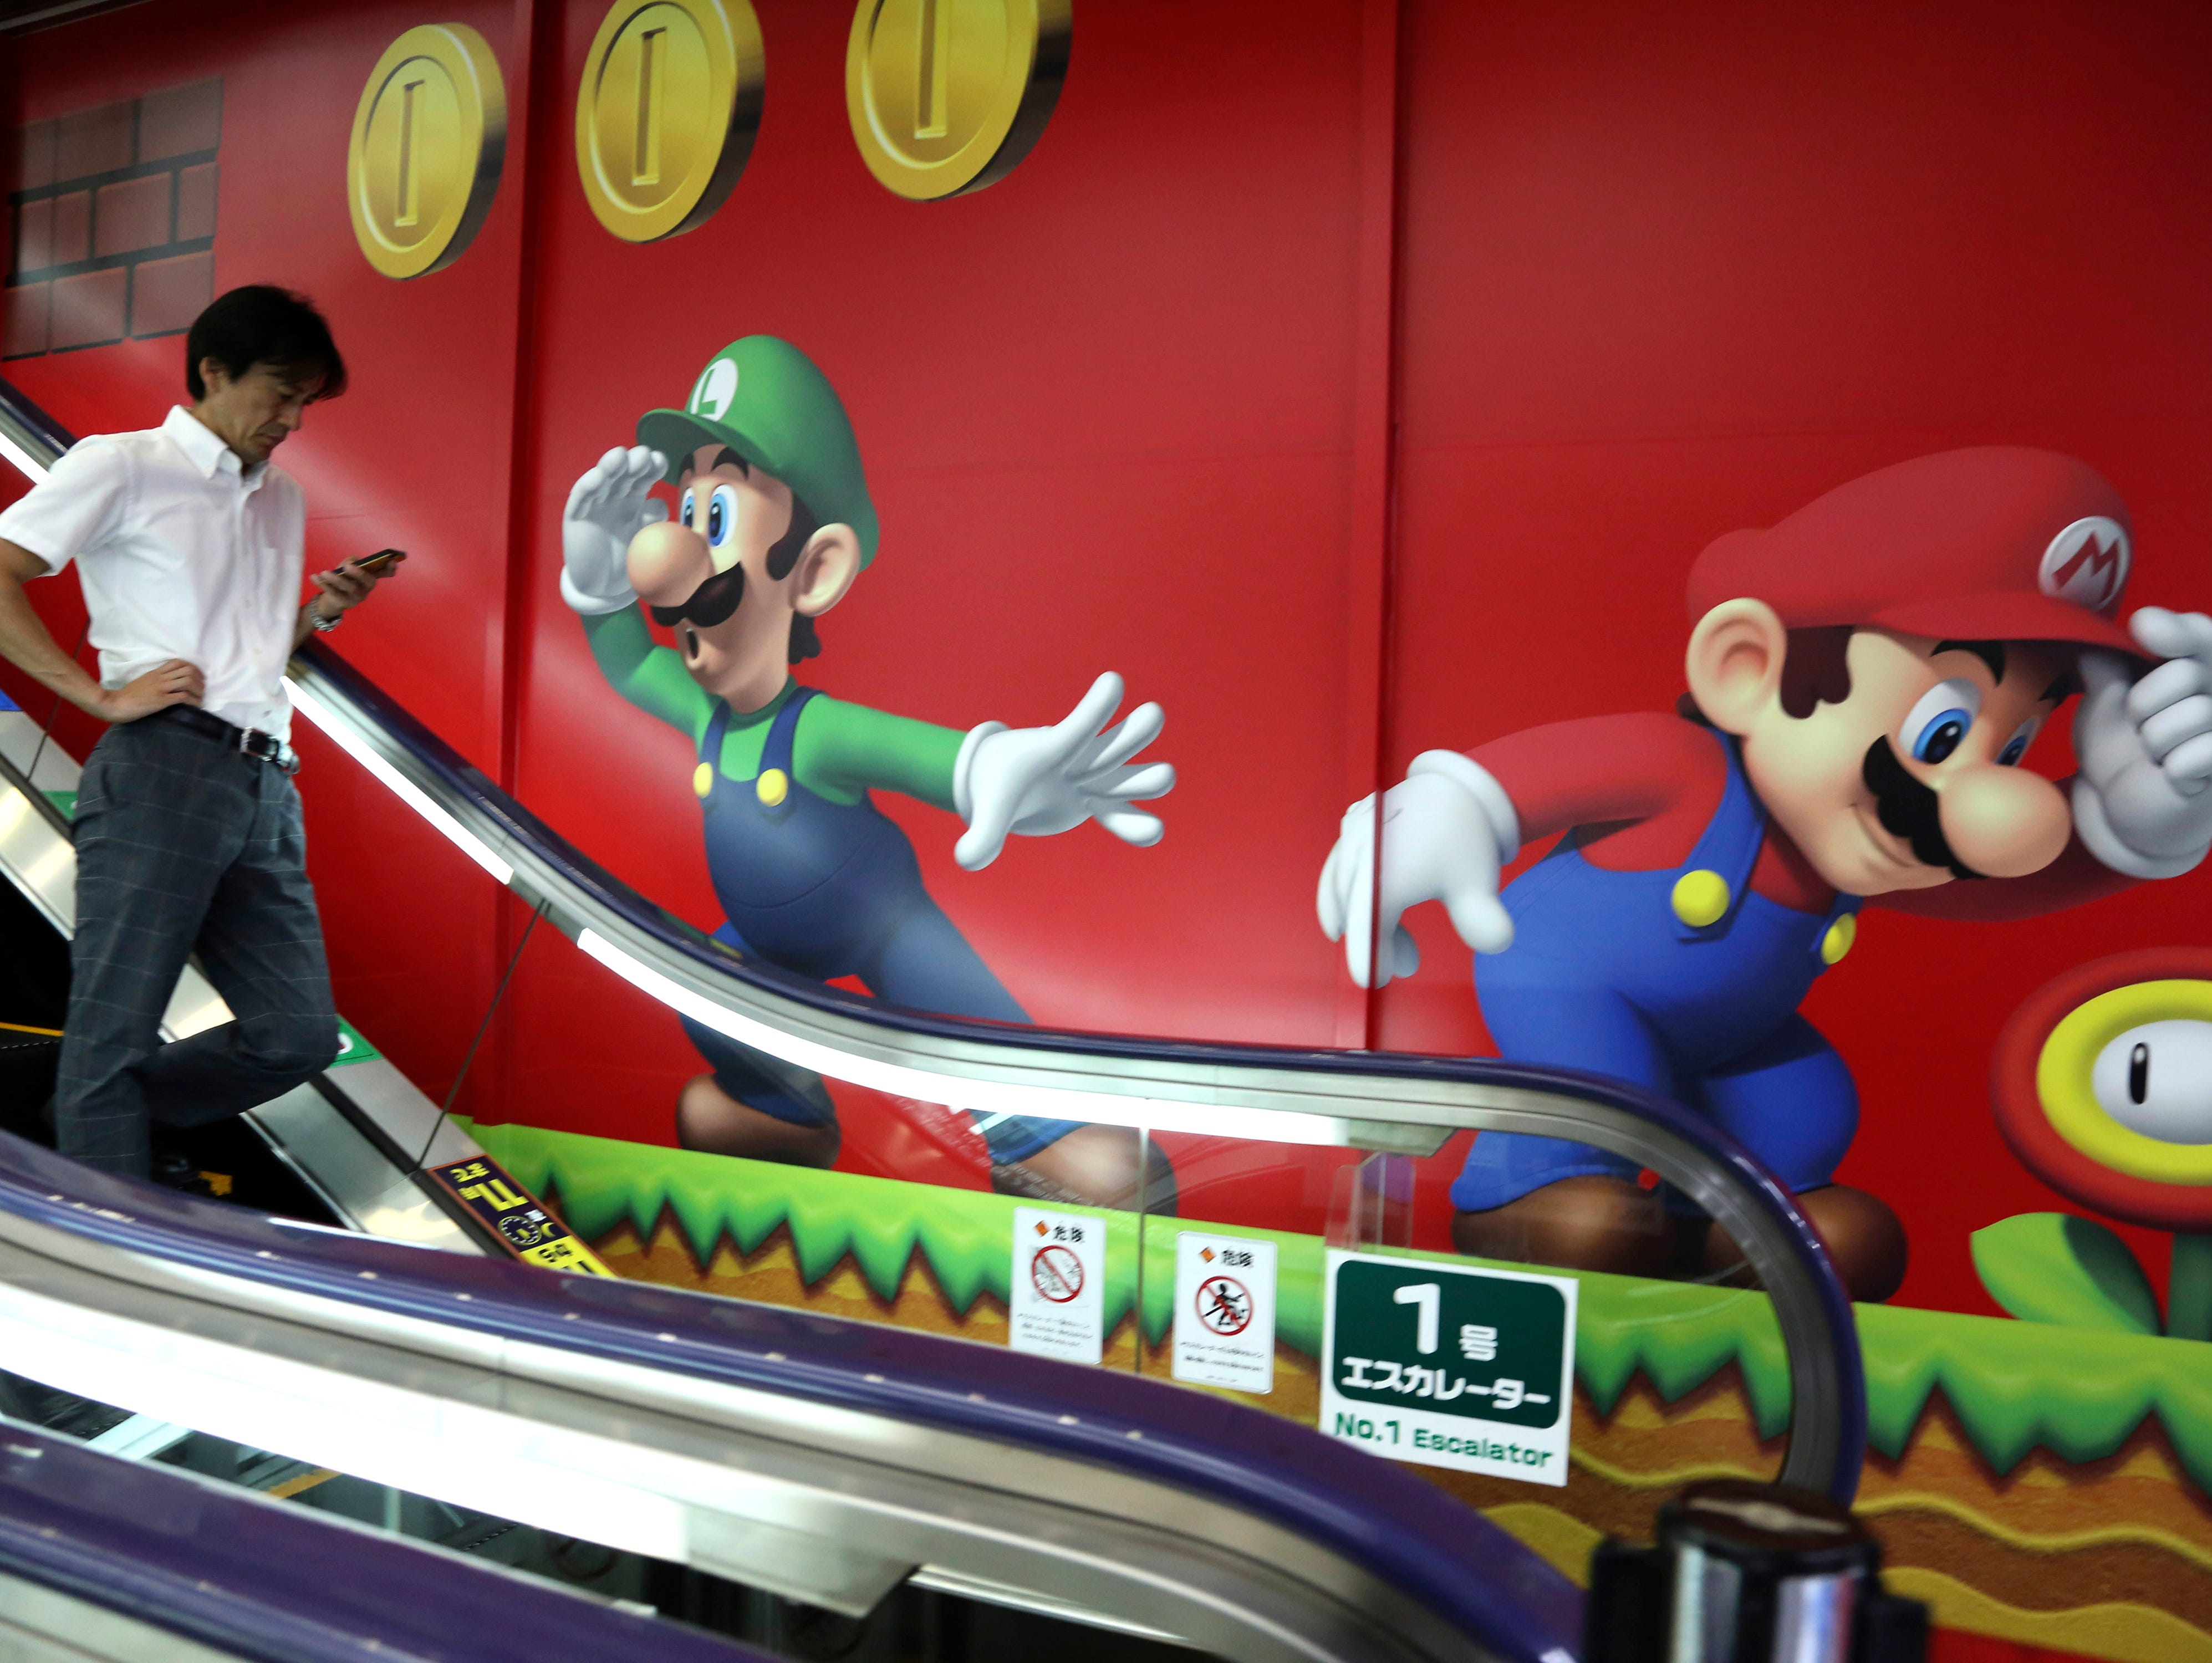 A shopper walks in front of Nintendo's Super Mario characters at an electronics store in Tokyo.